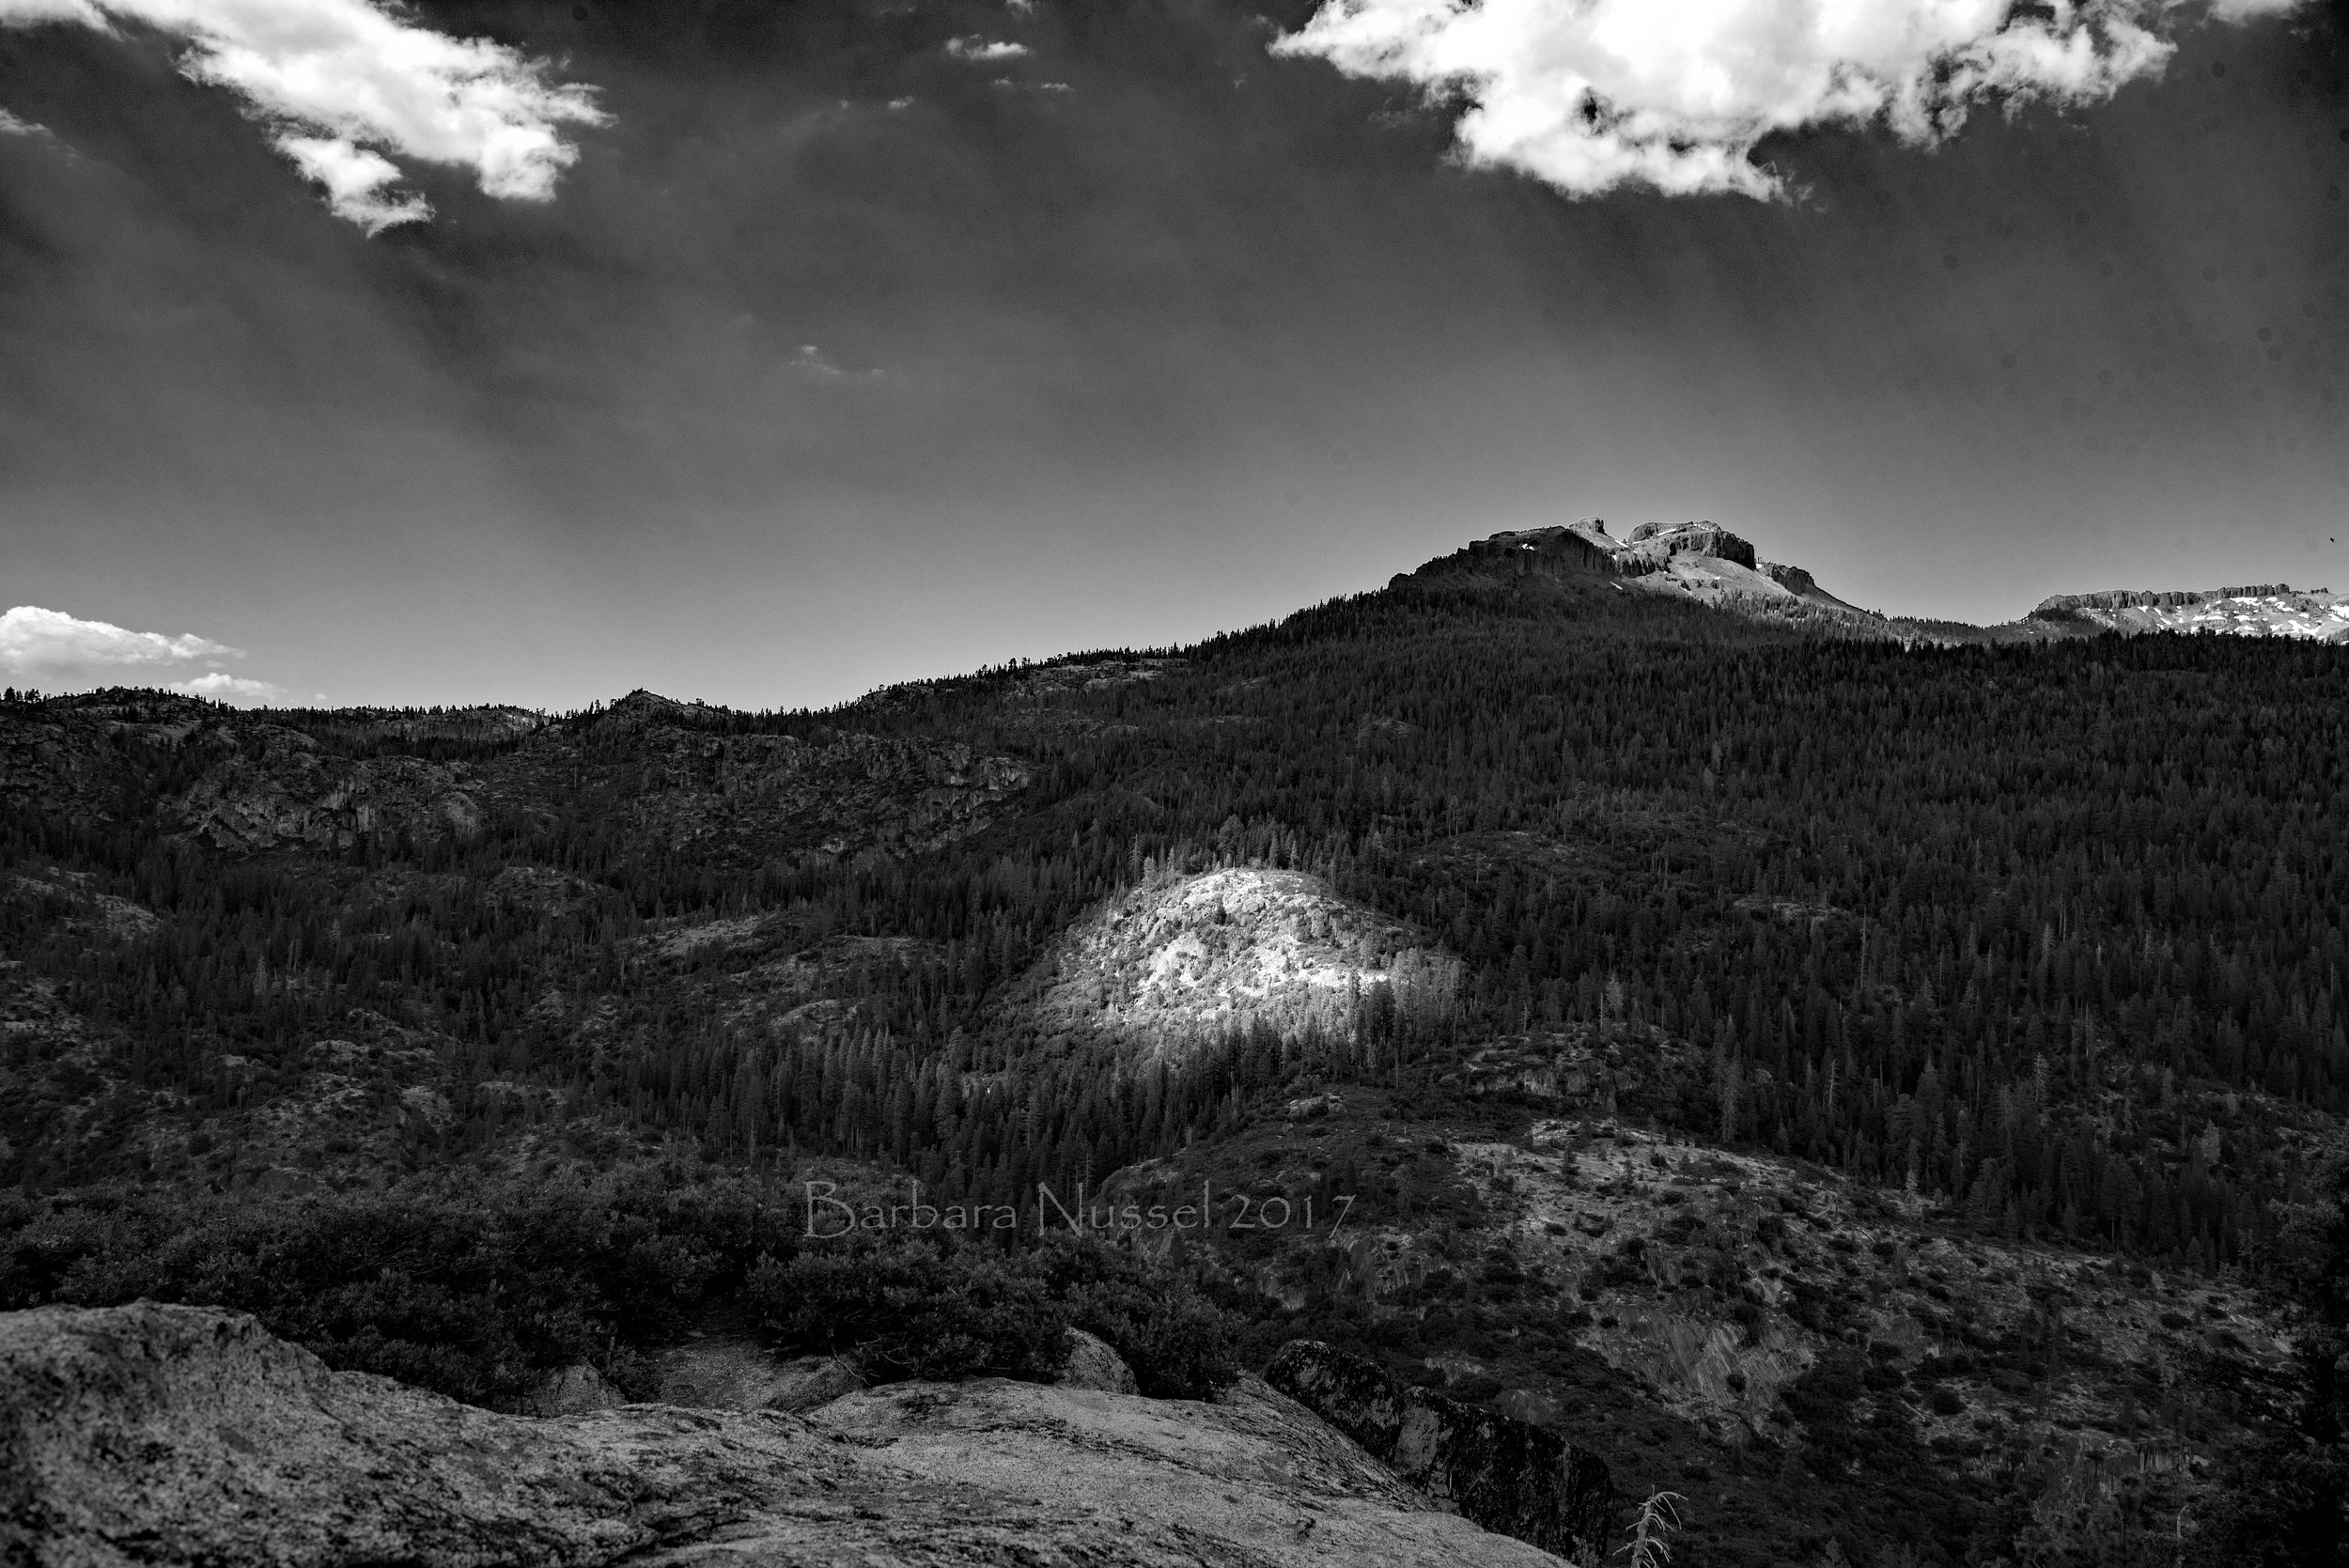 View across the Stanislaus River Canyon -- Spot light is on!